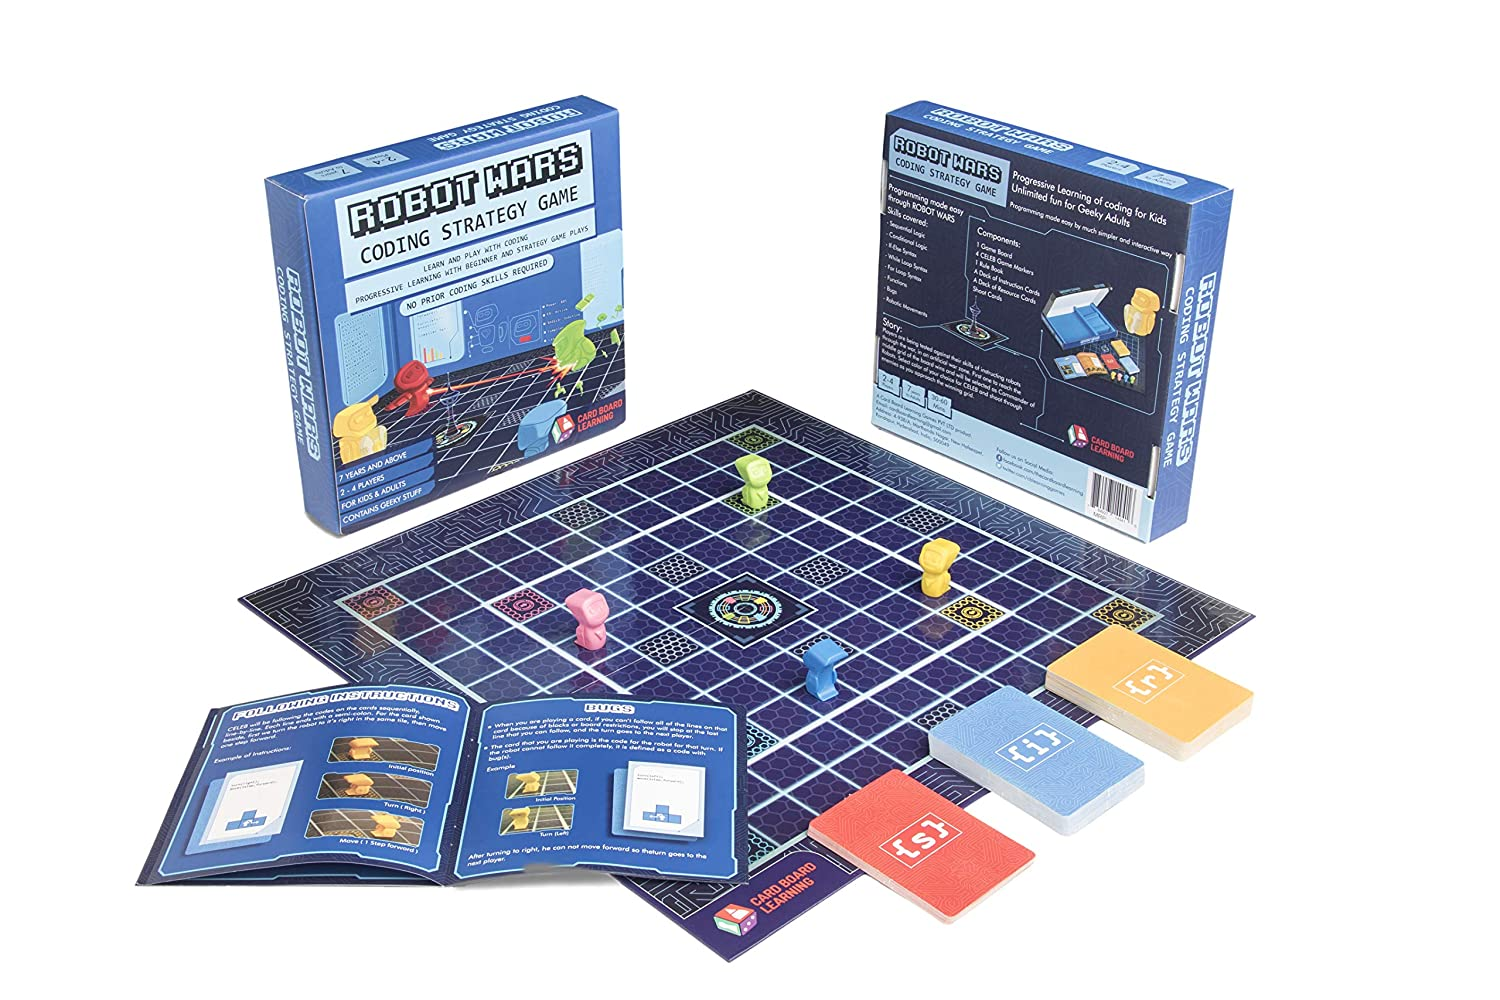 ROBOT WARS Coding Board Game - Learn and Play with Computer Programming   Geeky STEM Toy and Gift for Boys and Girls ages 7 years and up  No Prior